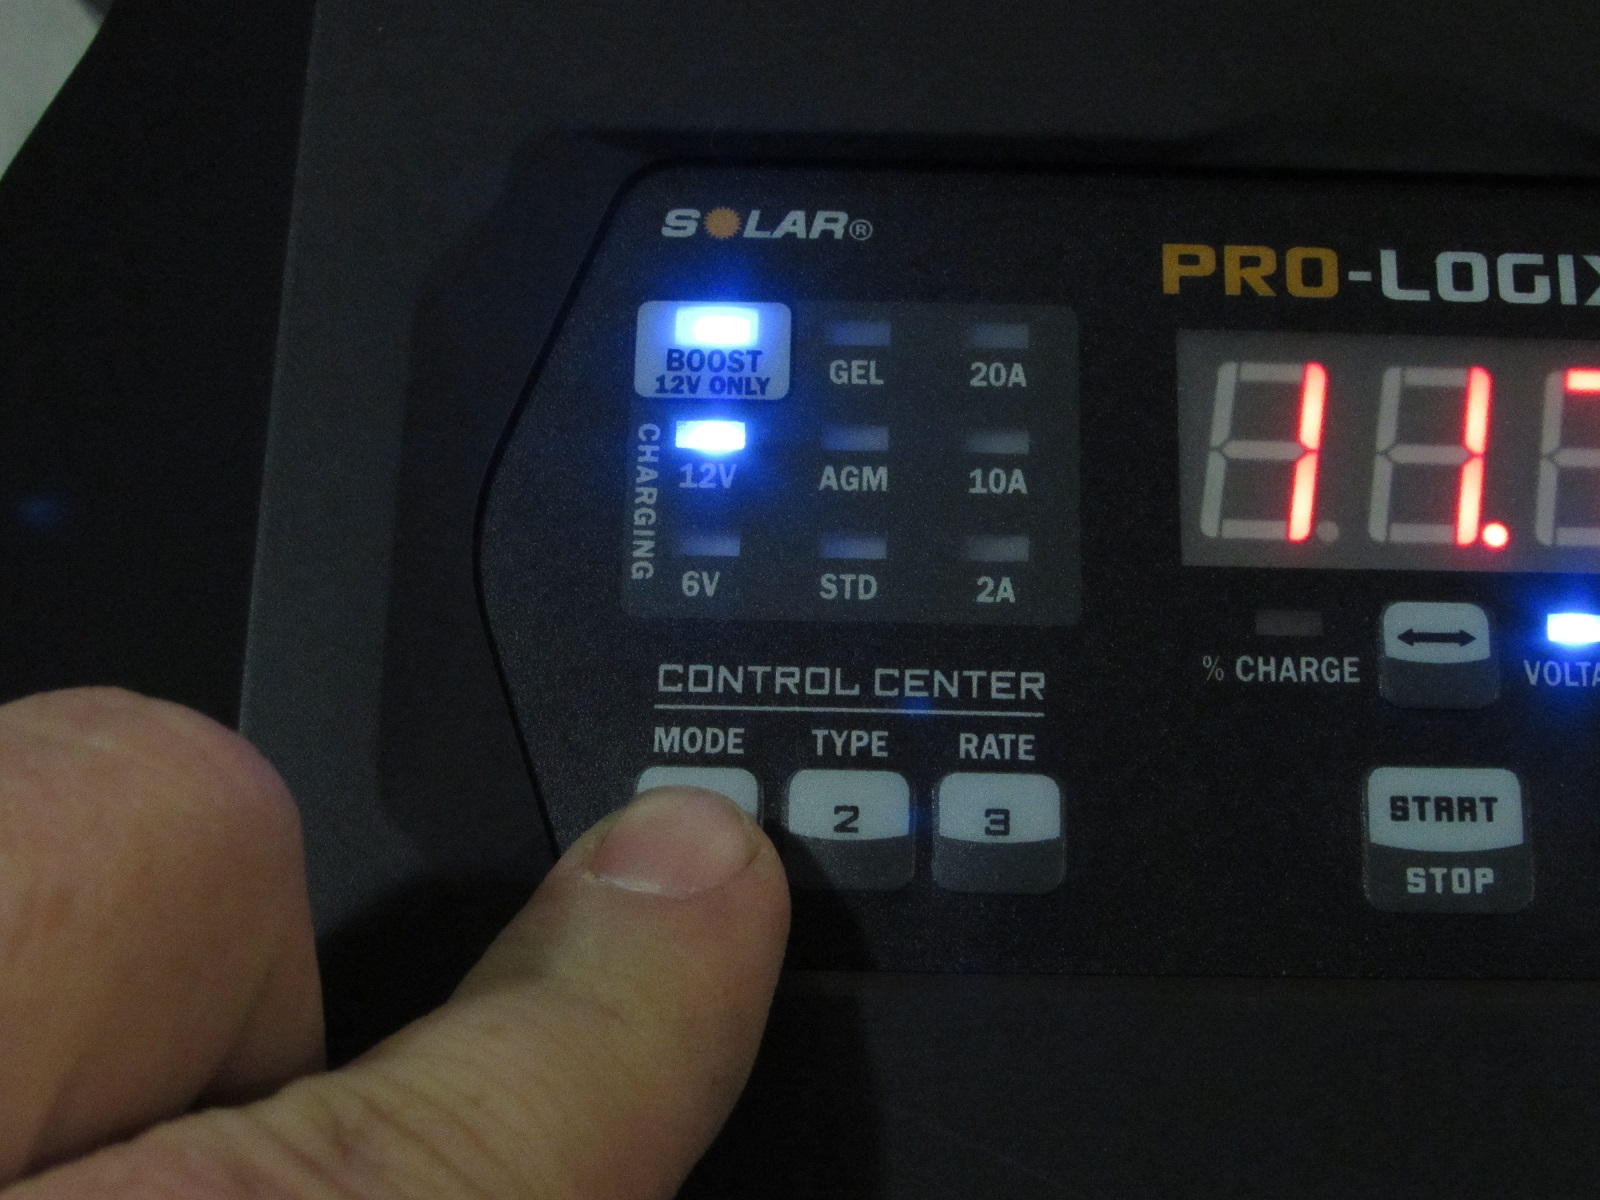 The PL2520 has multiple settings for boost mode, voltage and amperage, as well as battery type.